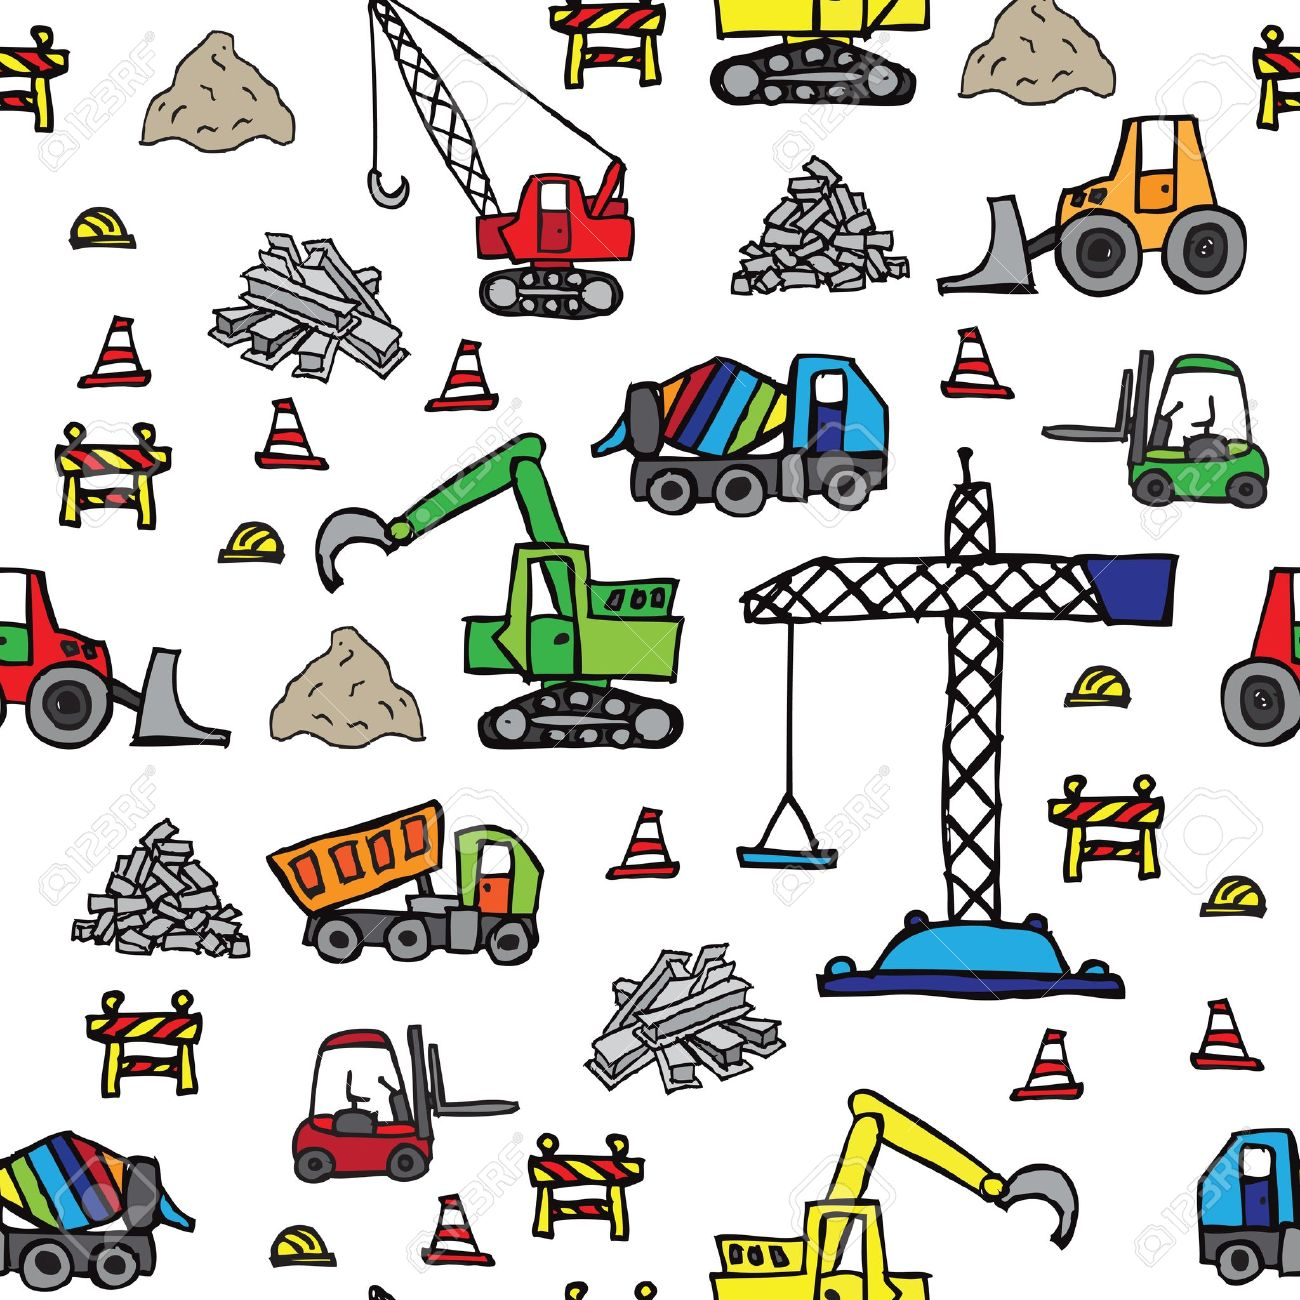 1300x1300 Construction Equipment Clip Art Best Ways To Unclog A Toilet Diagram